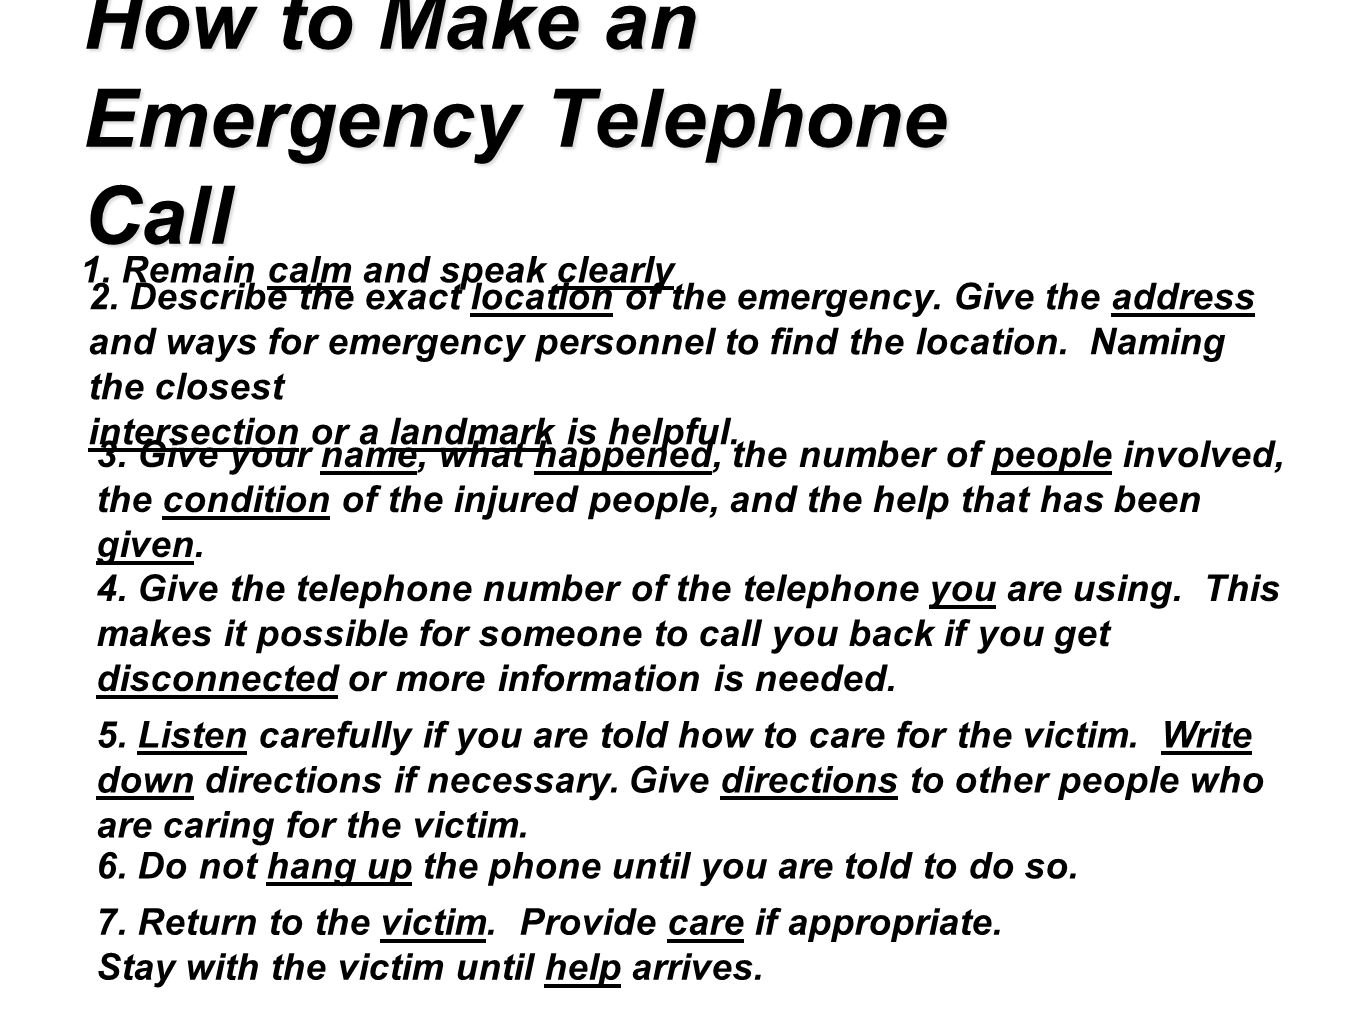 How to Make an Emergency Telephone Call 1. Remain calm and speak clearly 2. Describe the exact location of the emergency. Give the address and ways fo